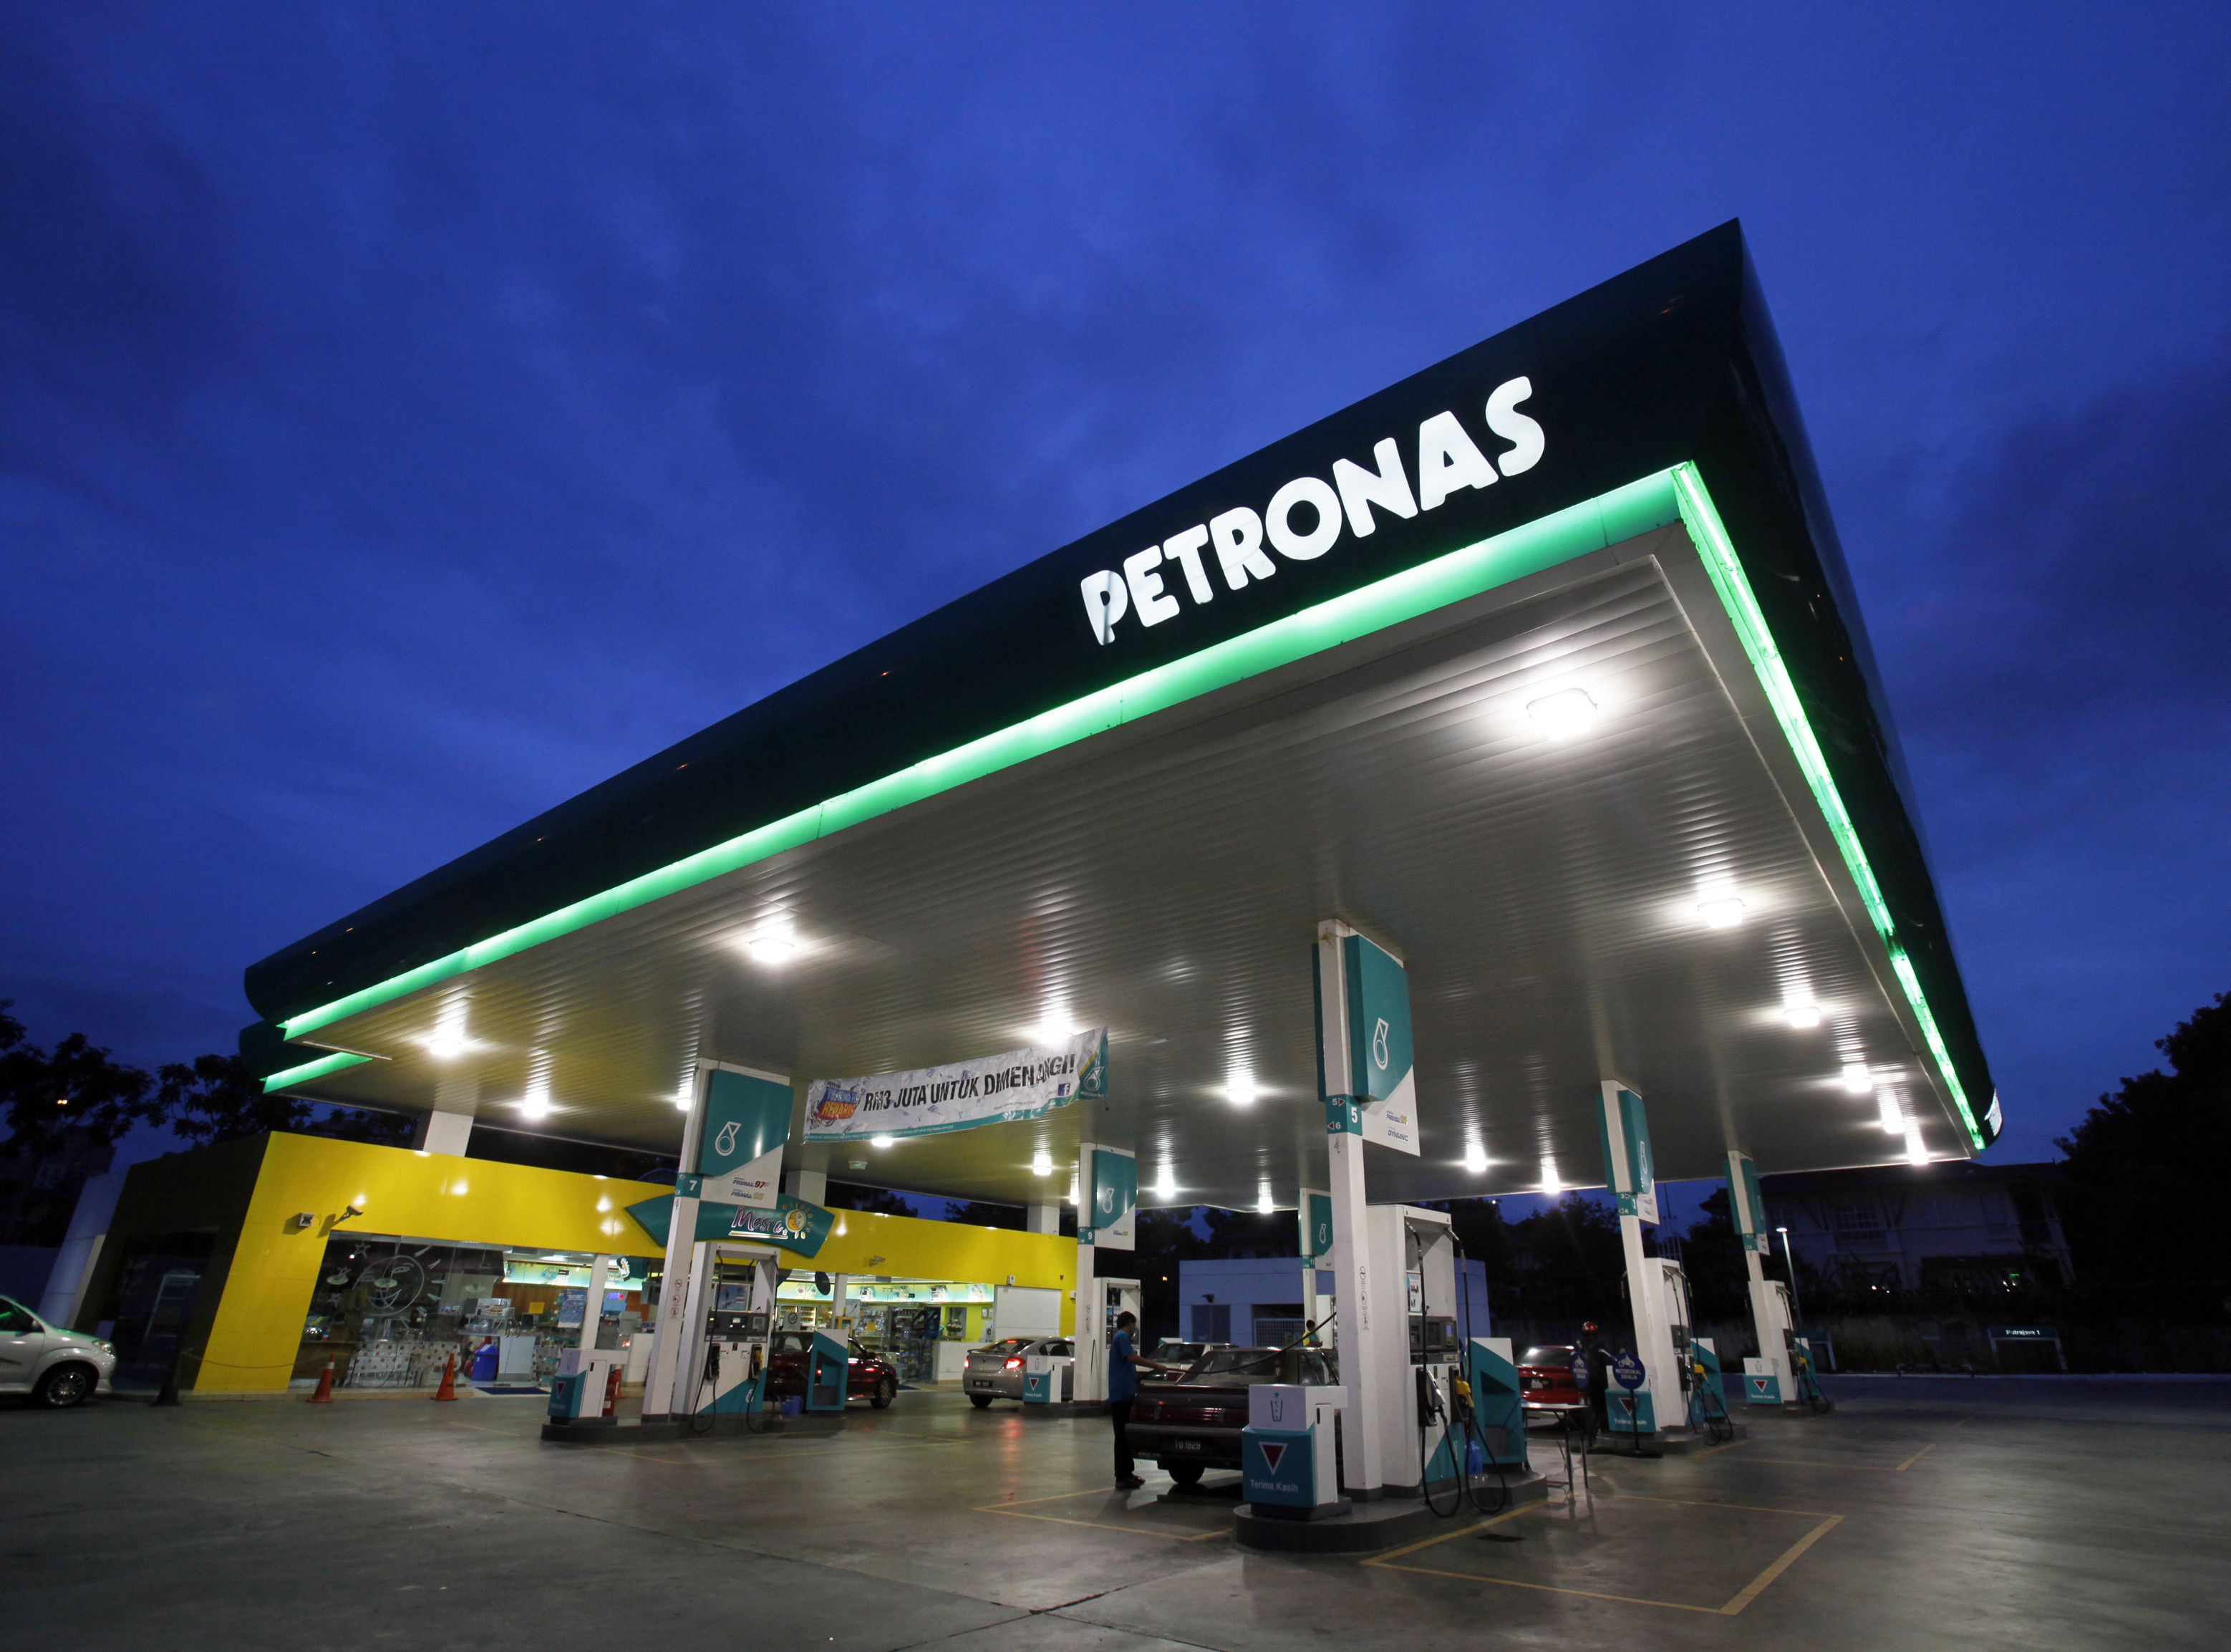 marketing plan petrol station Are you interested in starting a gas station business (premium motor spirit or petrol), ago (automated gasoline your marketing plan, mission and vision.